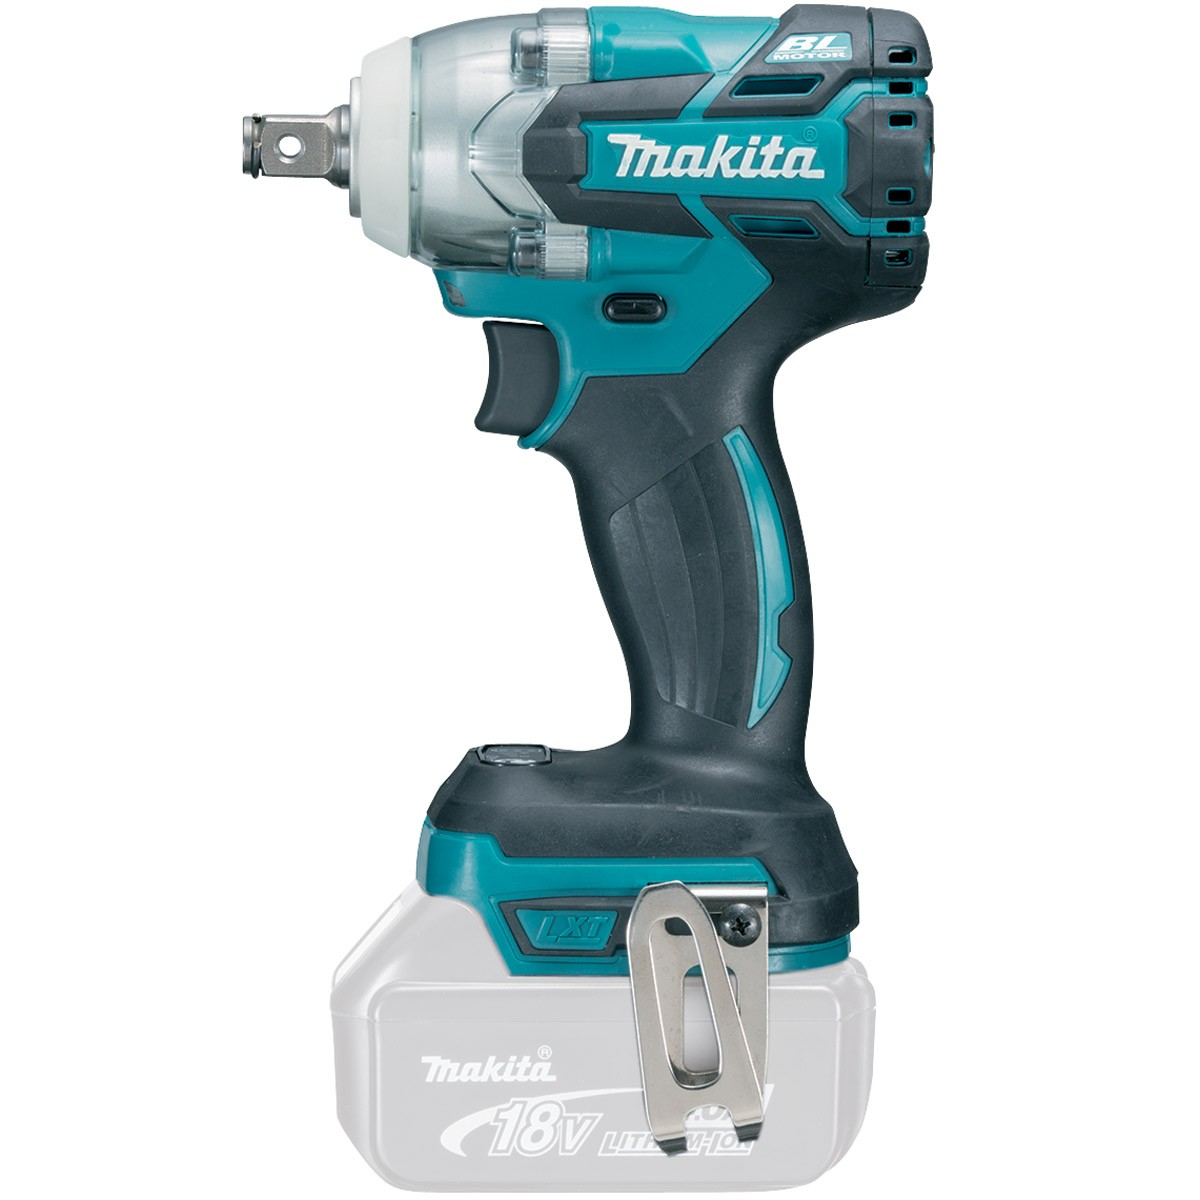 "Makita DTW281Z LXT 18v Brushless 1/2"" Impact Wrench Body Only"